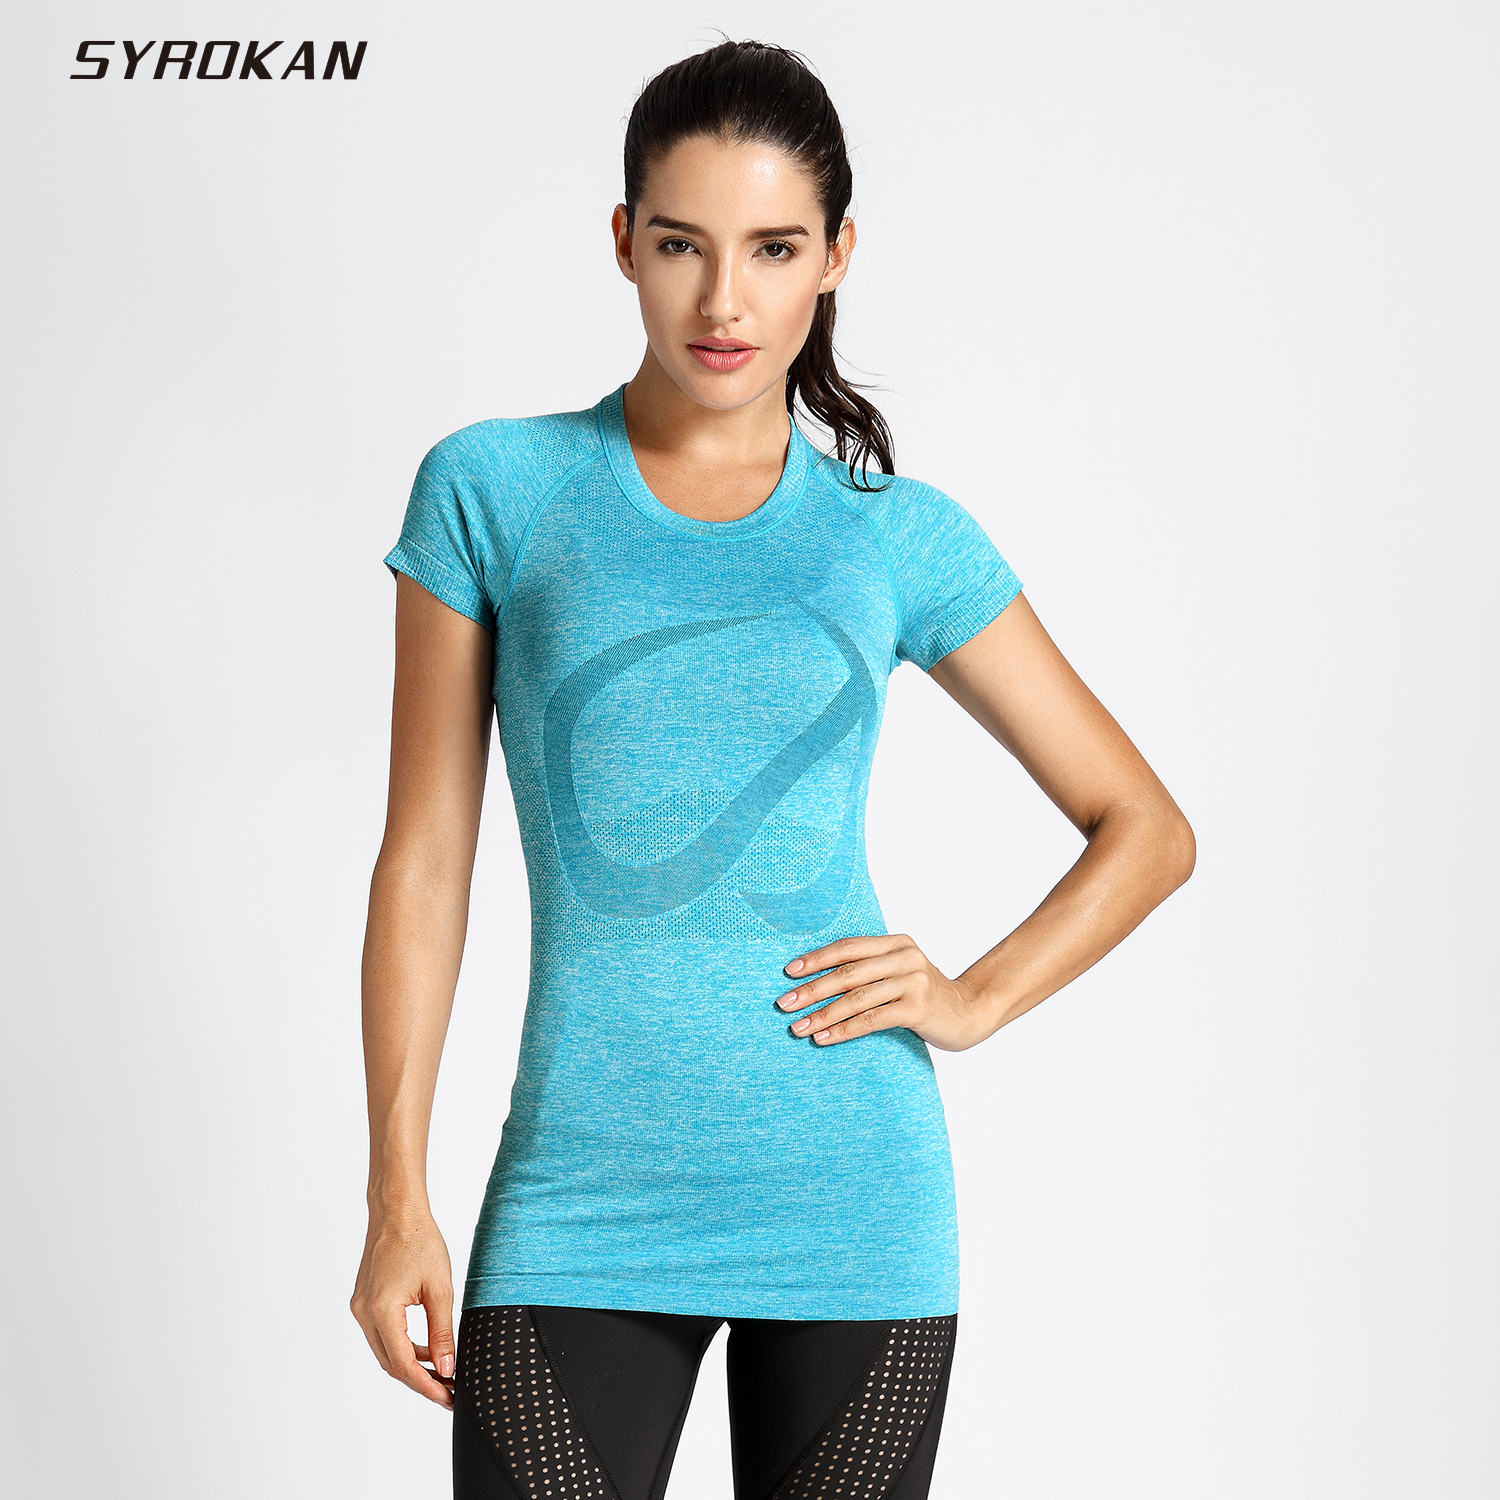 SYROKAN Women's Active Sports Tee Seamless Short Sleeve Performance T-shirt